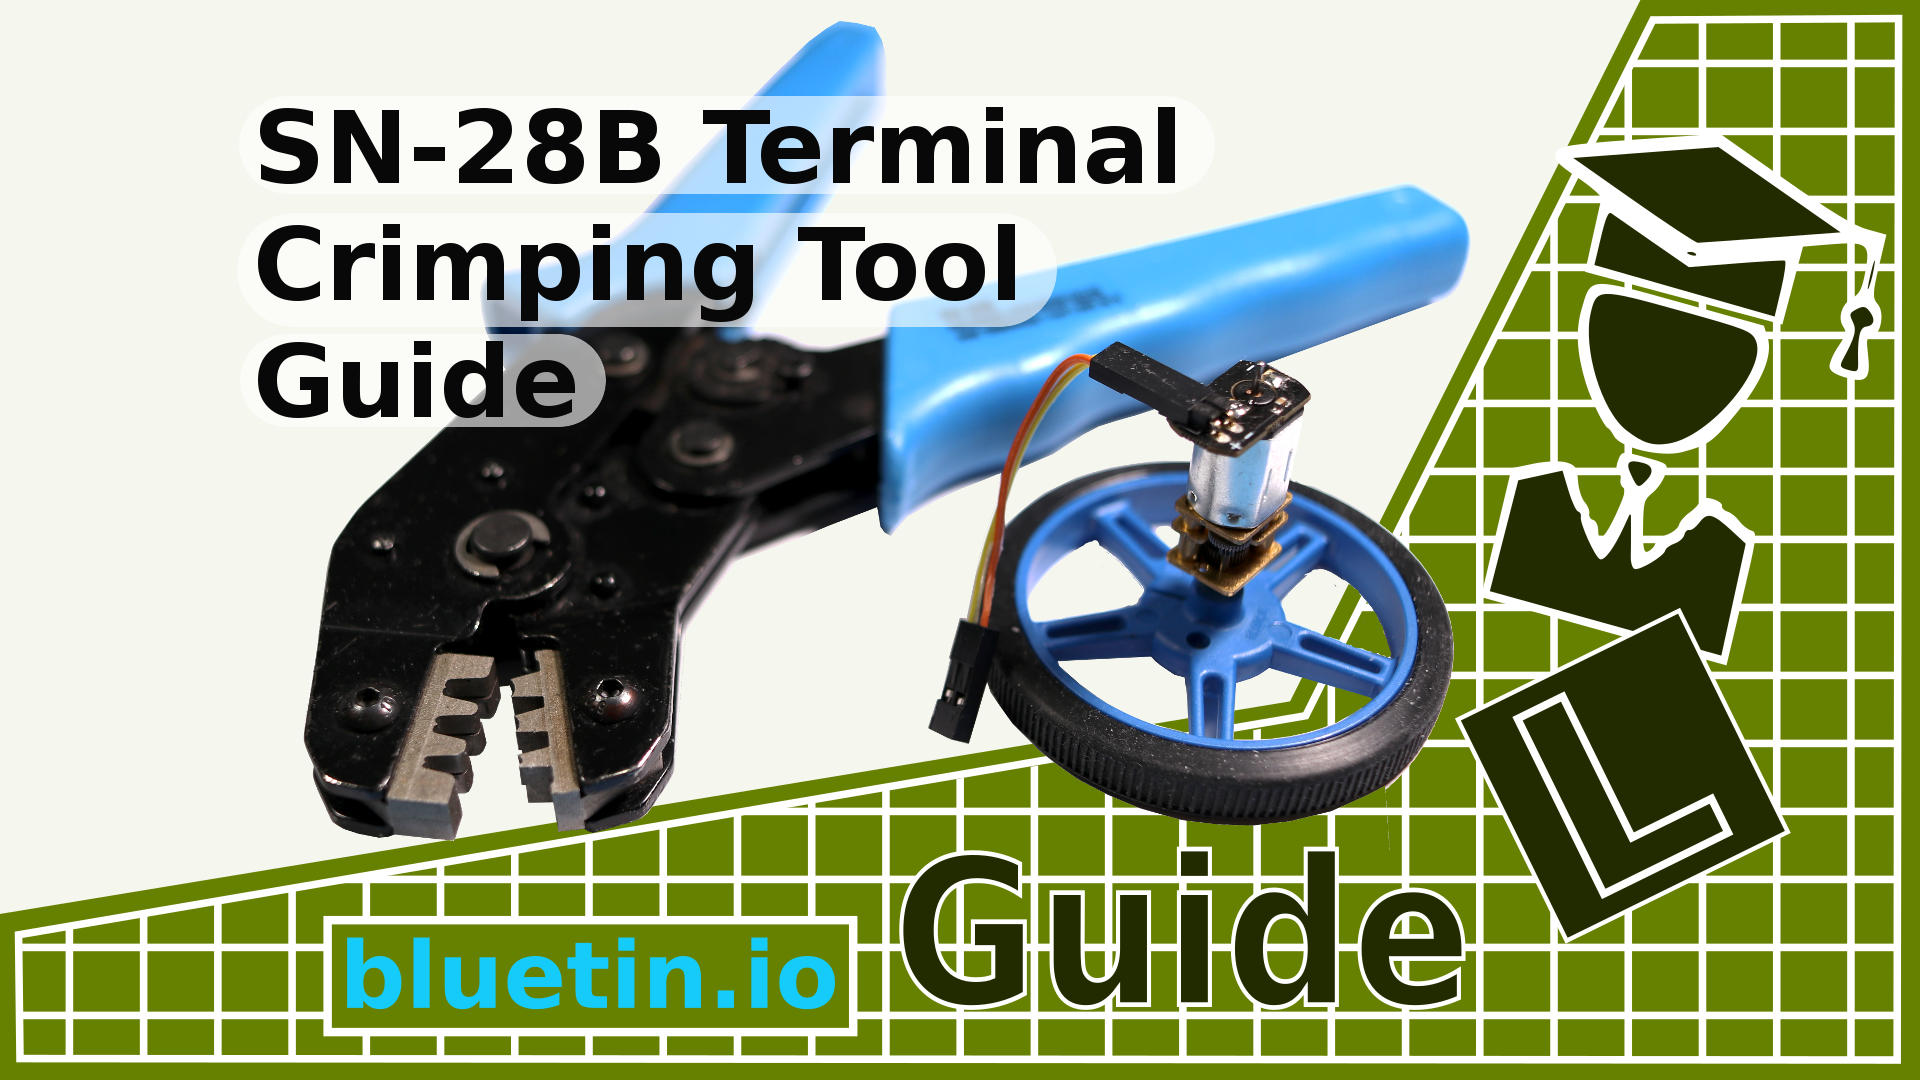 sn 28b terminal pin crimping tool guide. Black Bedroom Furniture Sets. Home Design Ideas